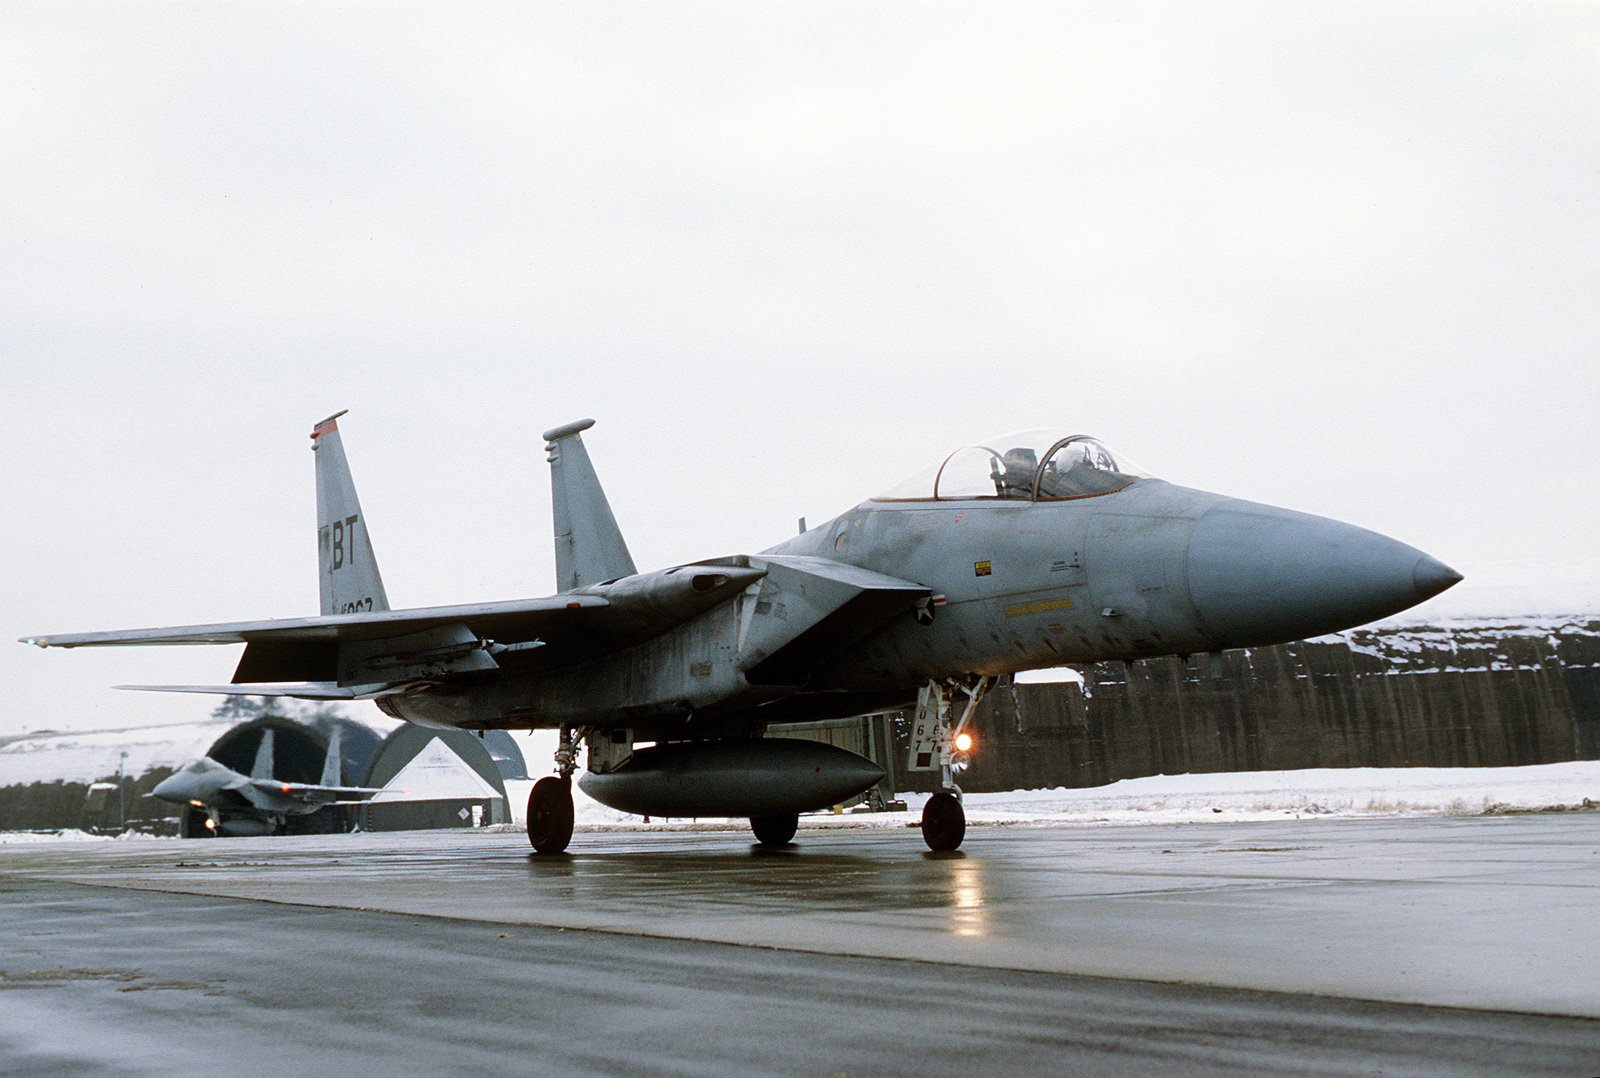 A right front view of an F-15 Eagle aircraft taxiing on the flight line. The aircraft is carrying a centerline auxiliary fuel tank